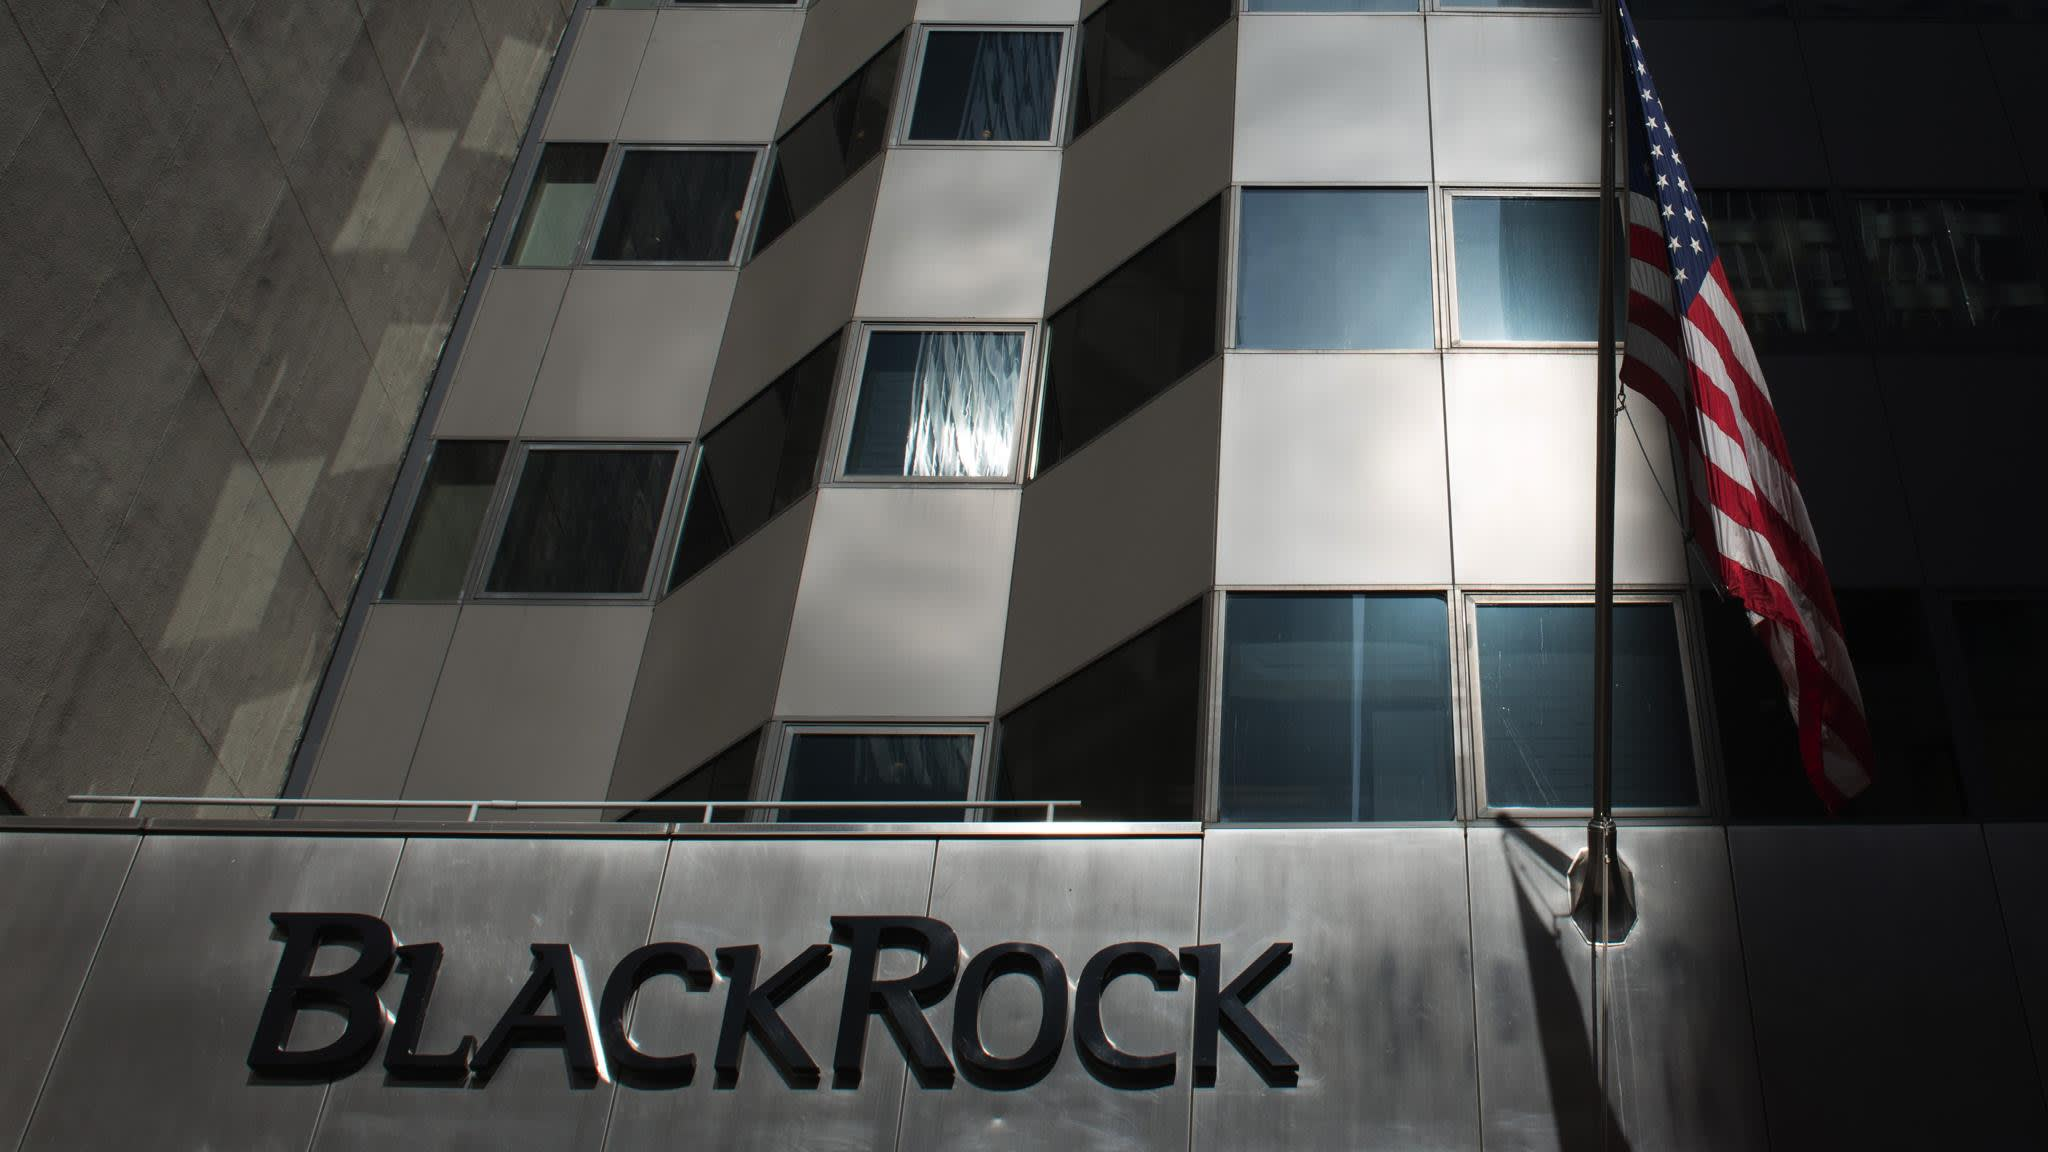 BlackRock buys 'robo-adviser' to woo millennials | Financial Times